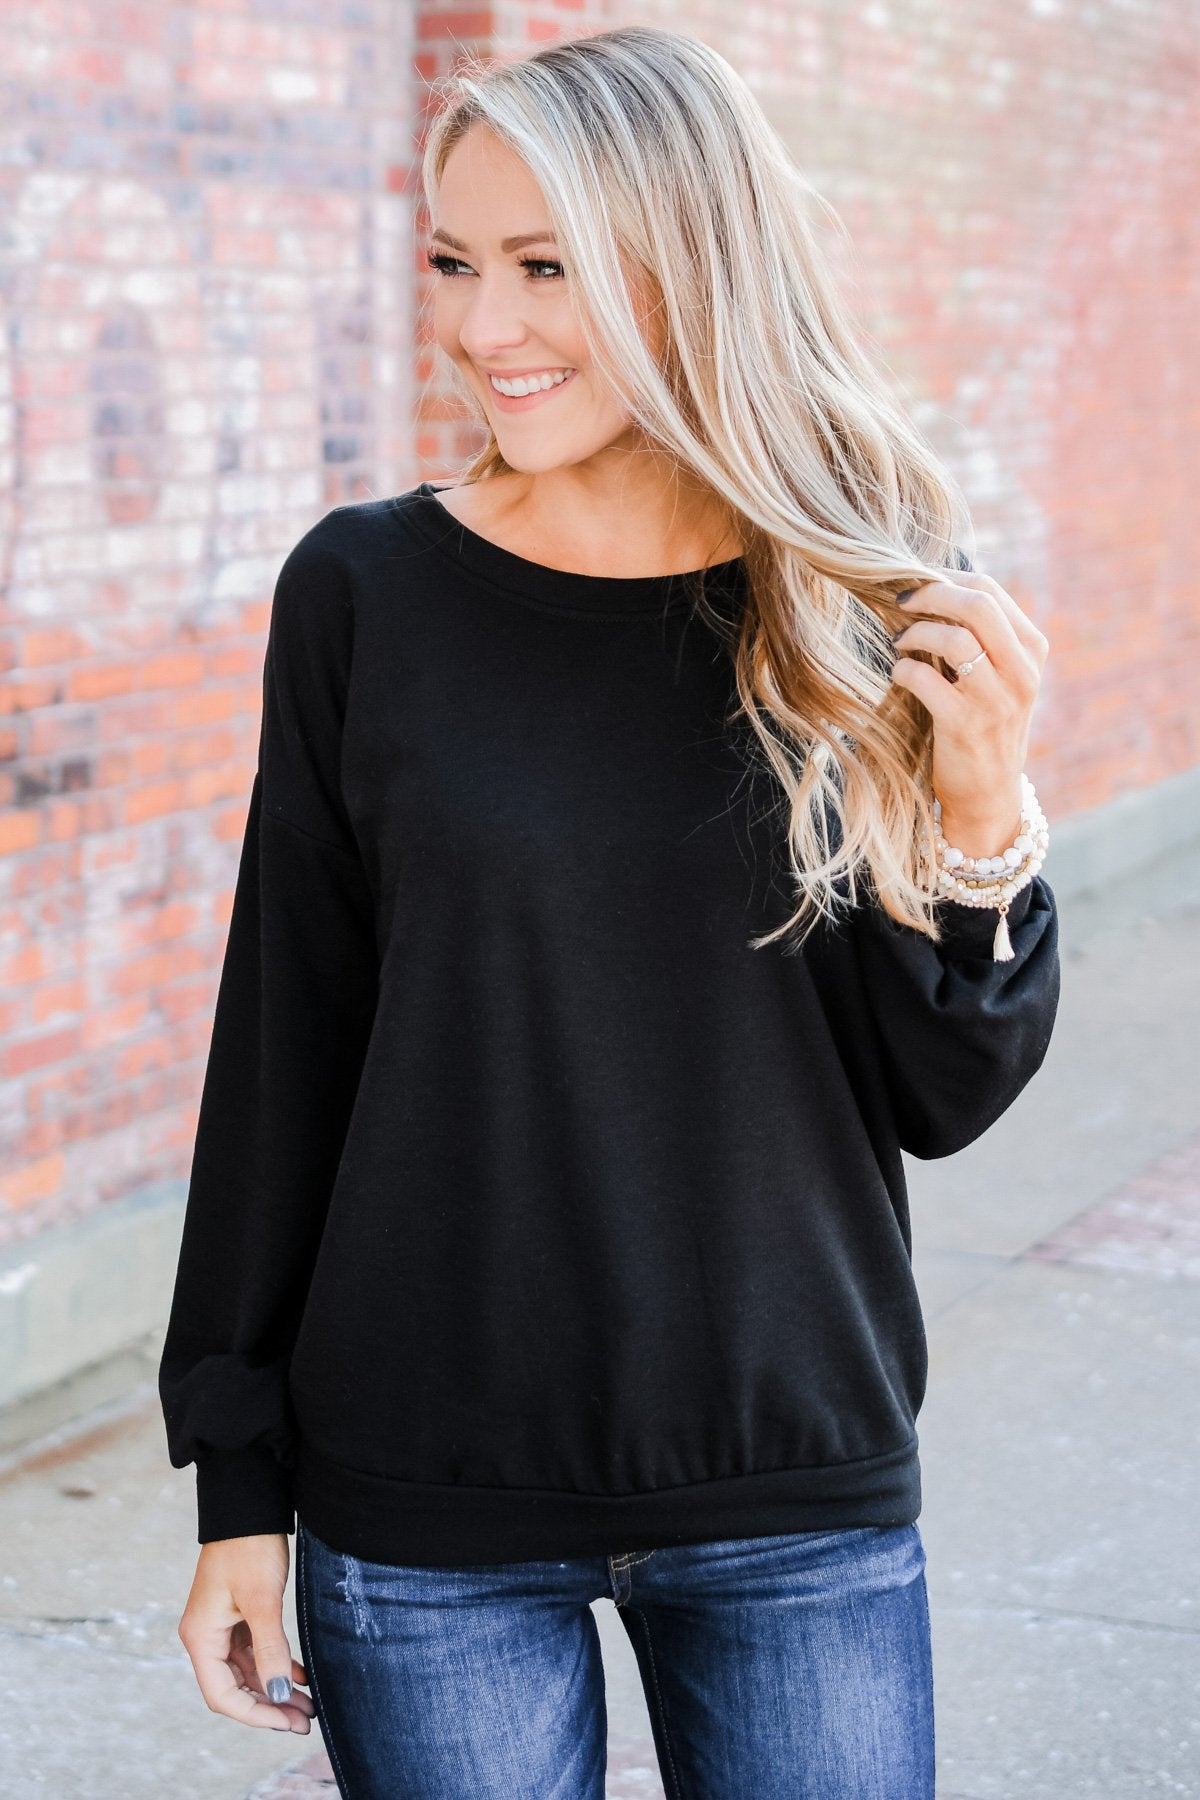 You Make It Easy Pullover Top- Black